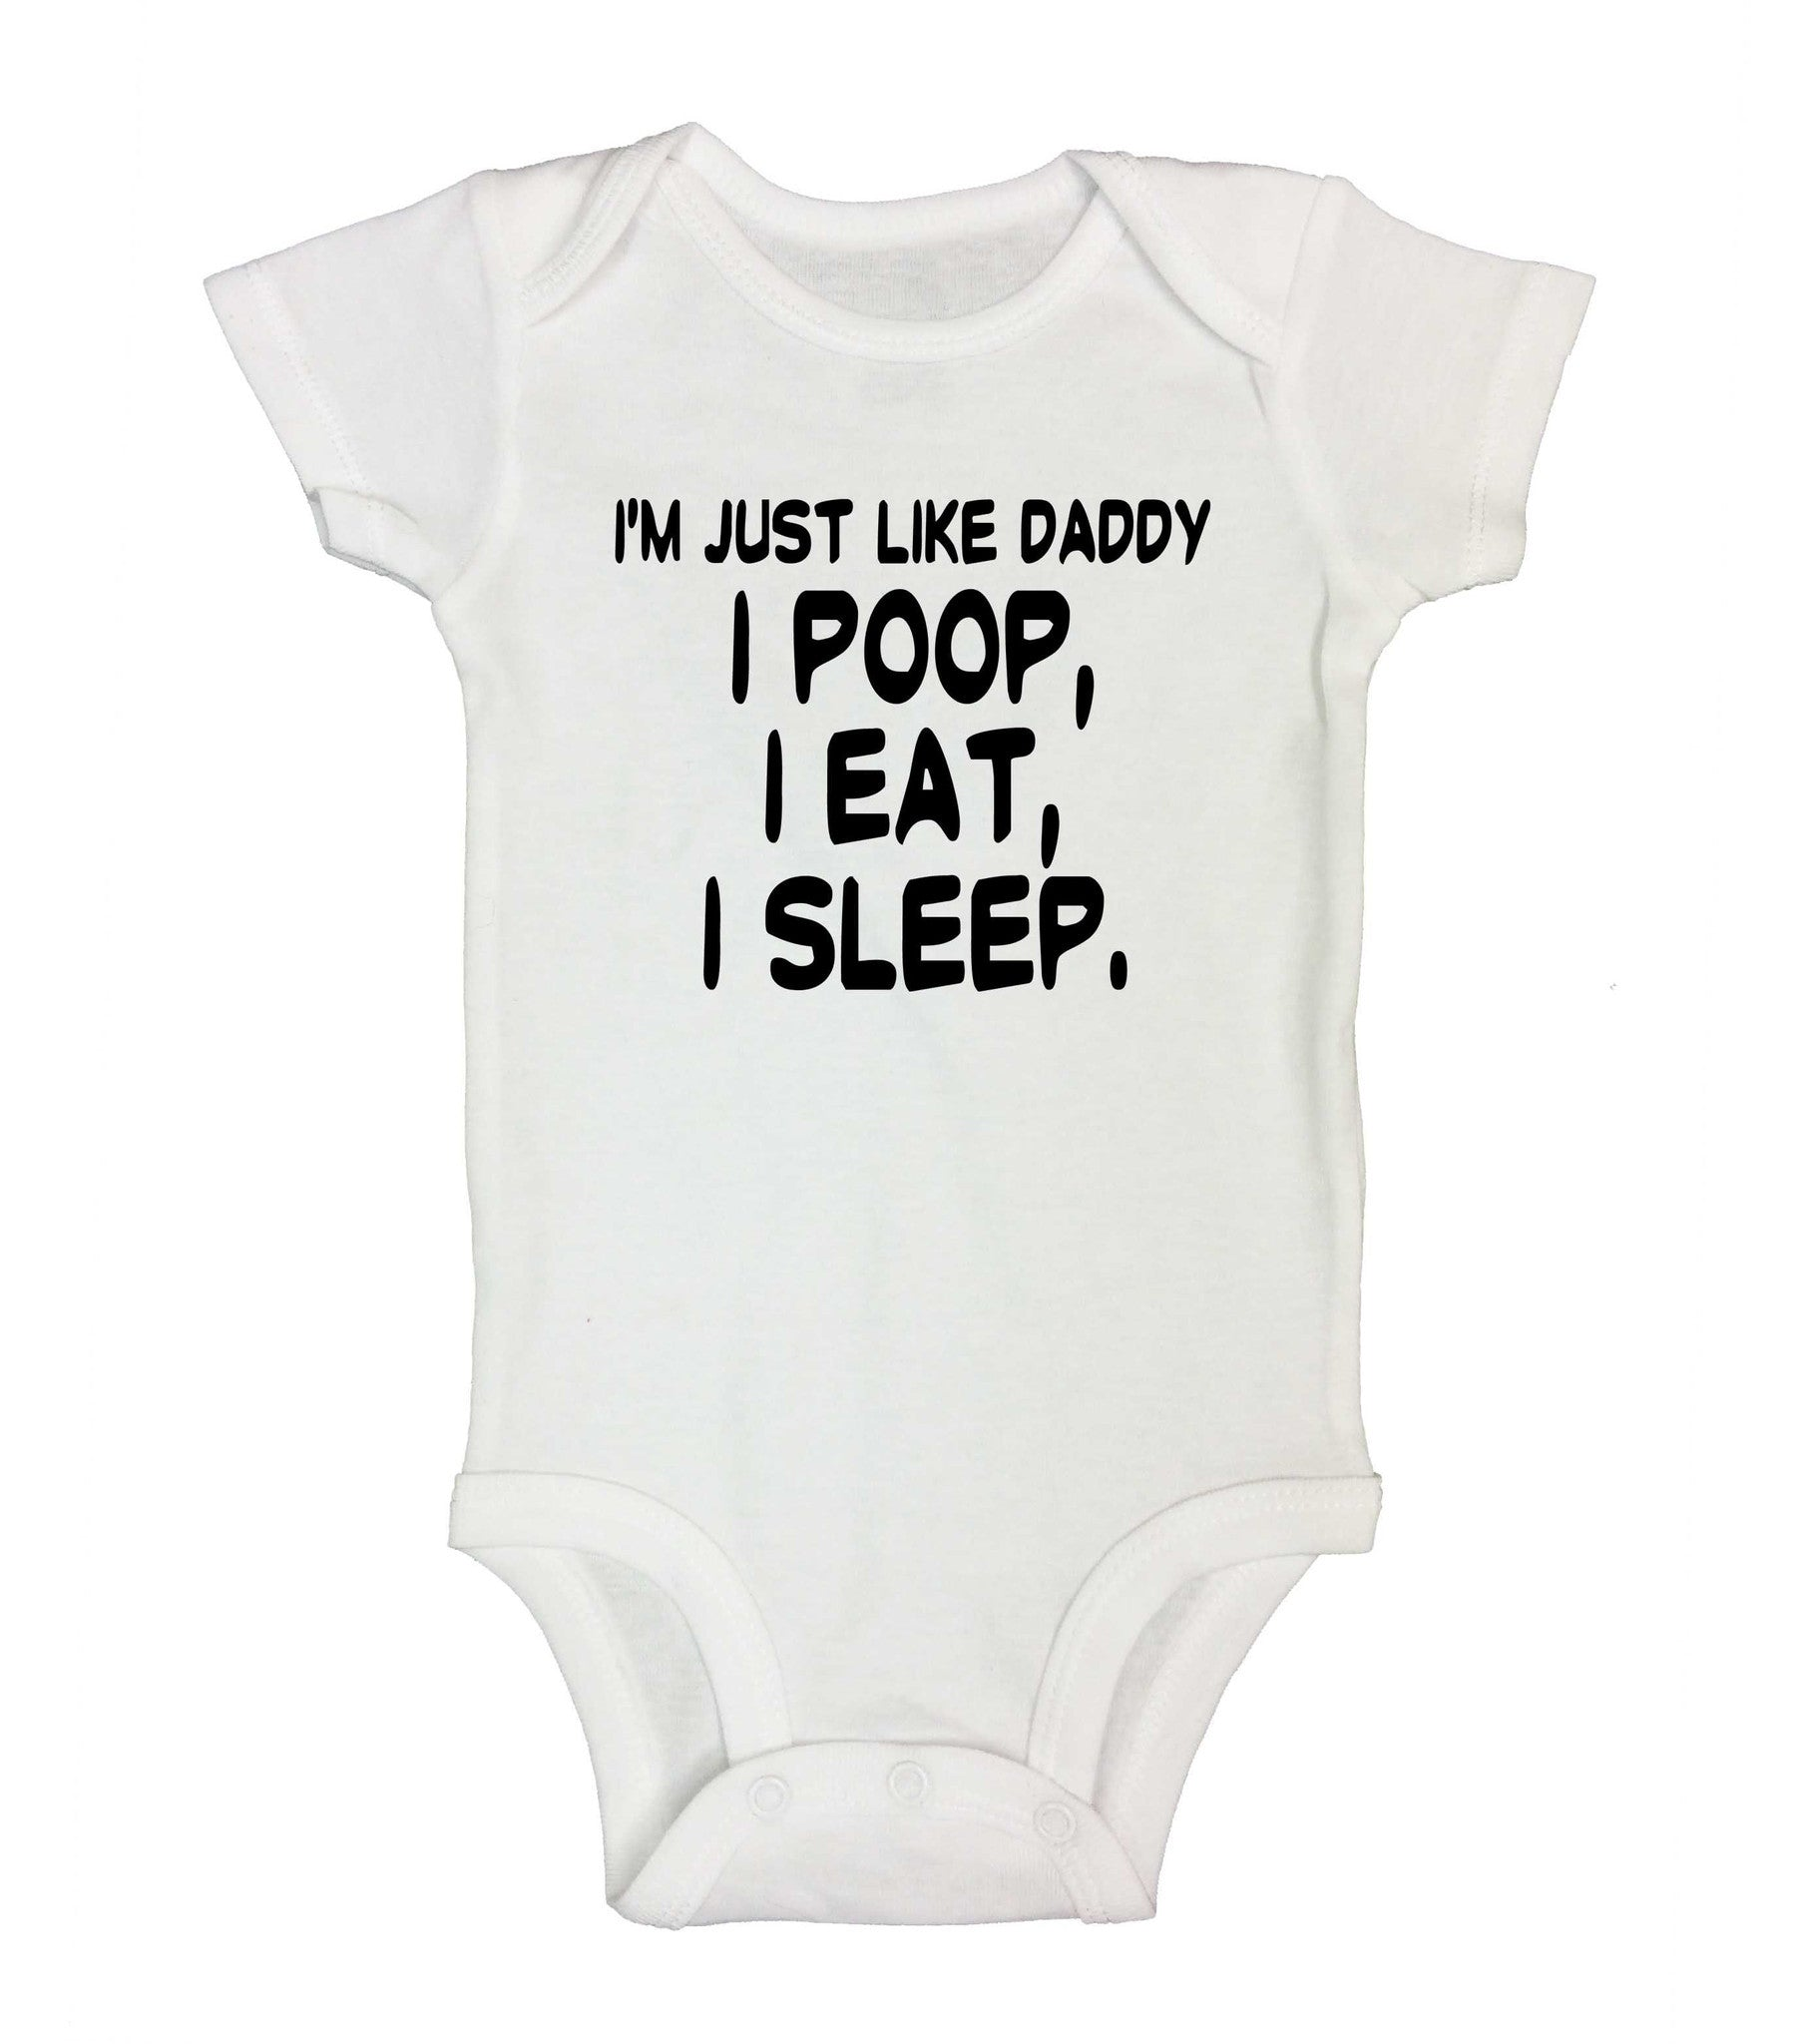 I'm Just Like Daddy I Poop, I Eat, I Sleep. Funny Kids Onesie - B224 - Funny Shirts Tank Tops Burnouts and Triblends  - 2